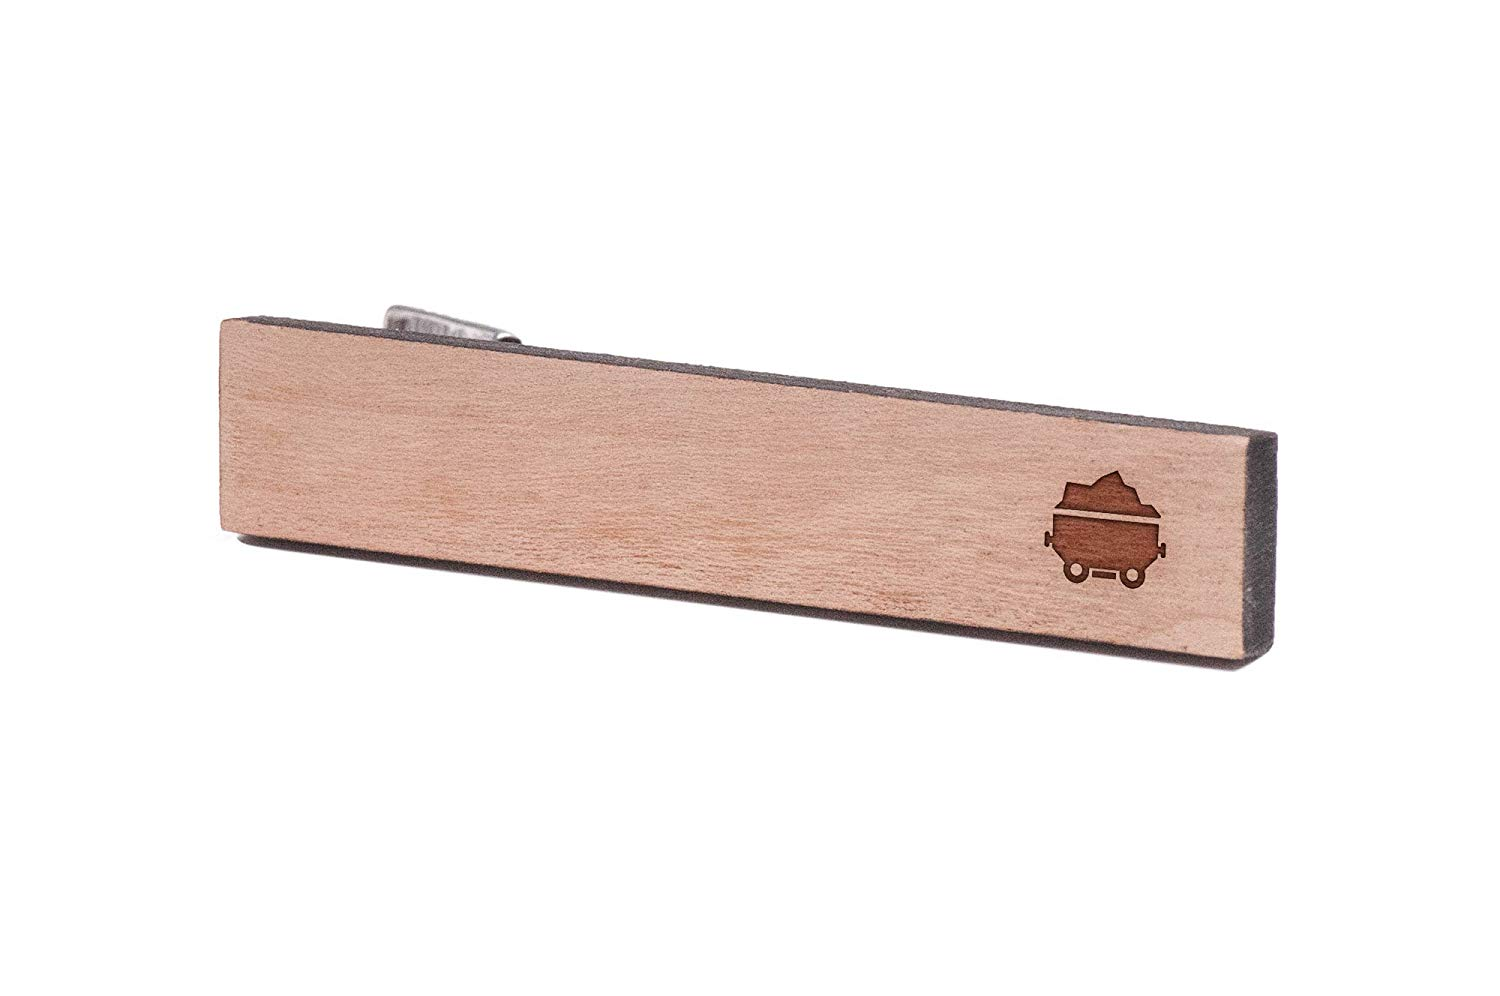 Wooden Accessories Company Wooden Tie Clips with Laser Engraved Coal Miner Design Cherry Wood Tie Bar Engraved in The USA